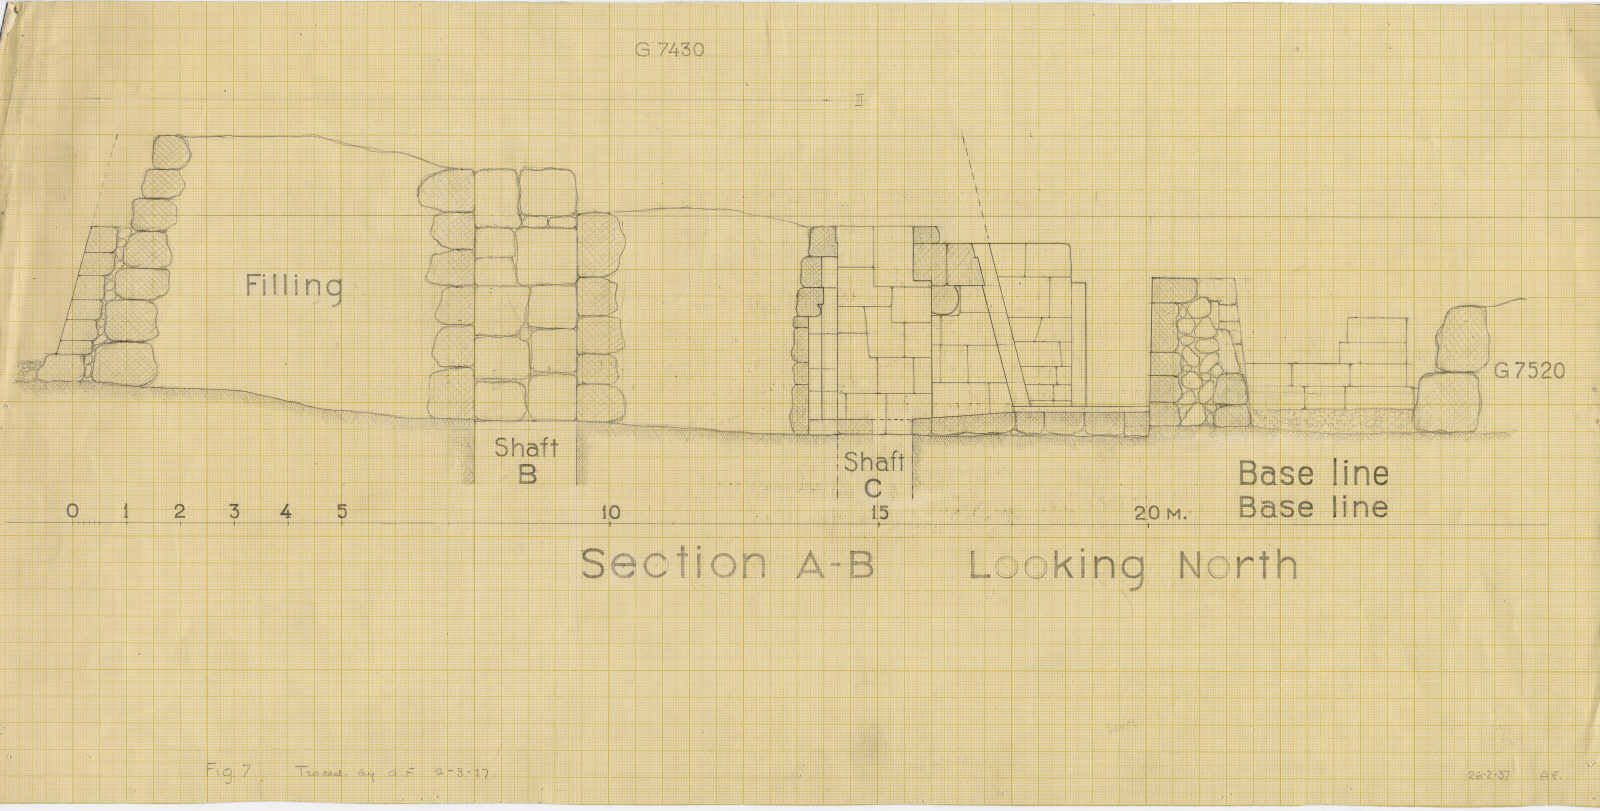 Maps and plans: Section of G 7430